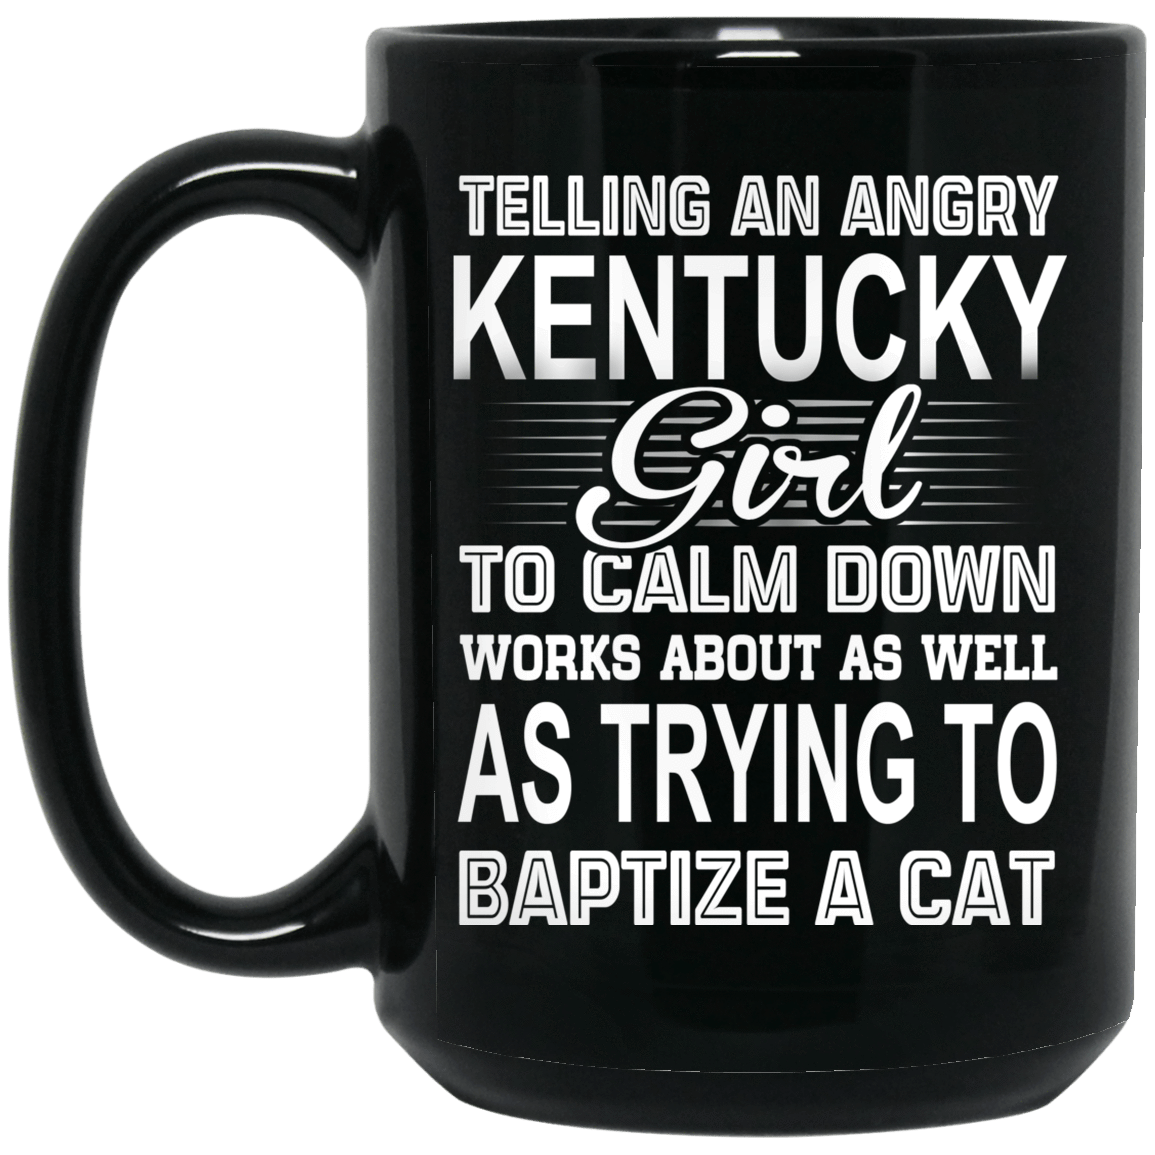 Telling An Angry Kentucky Girl To Calm Down Works About As Well As Trying To Baptize A Cat Mug 1066-10182-76151642-49311 - Tee Ript